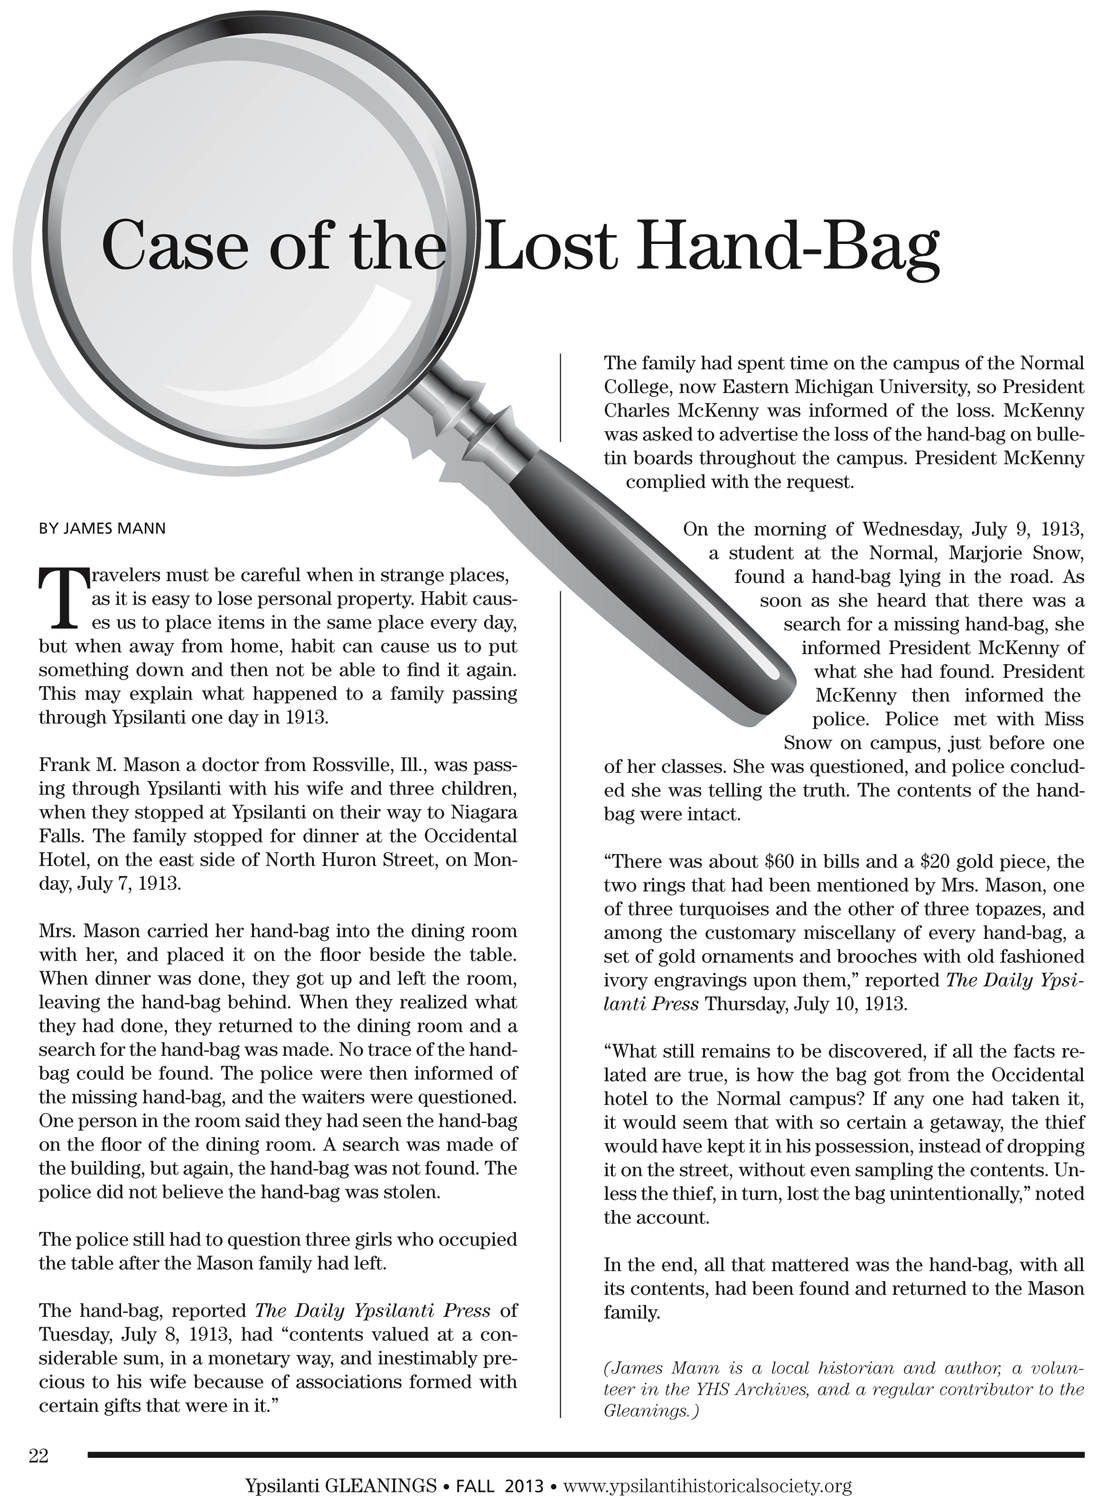 Case of the Lost Handbag image